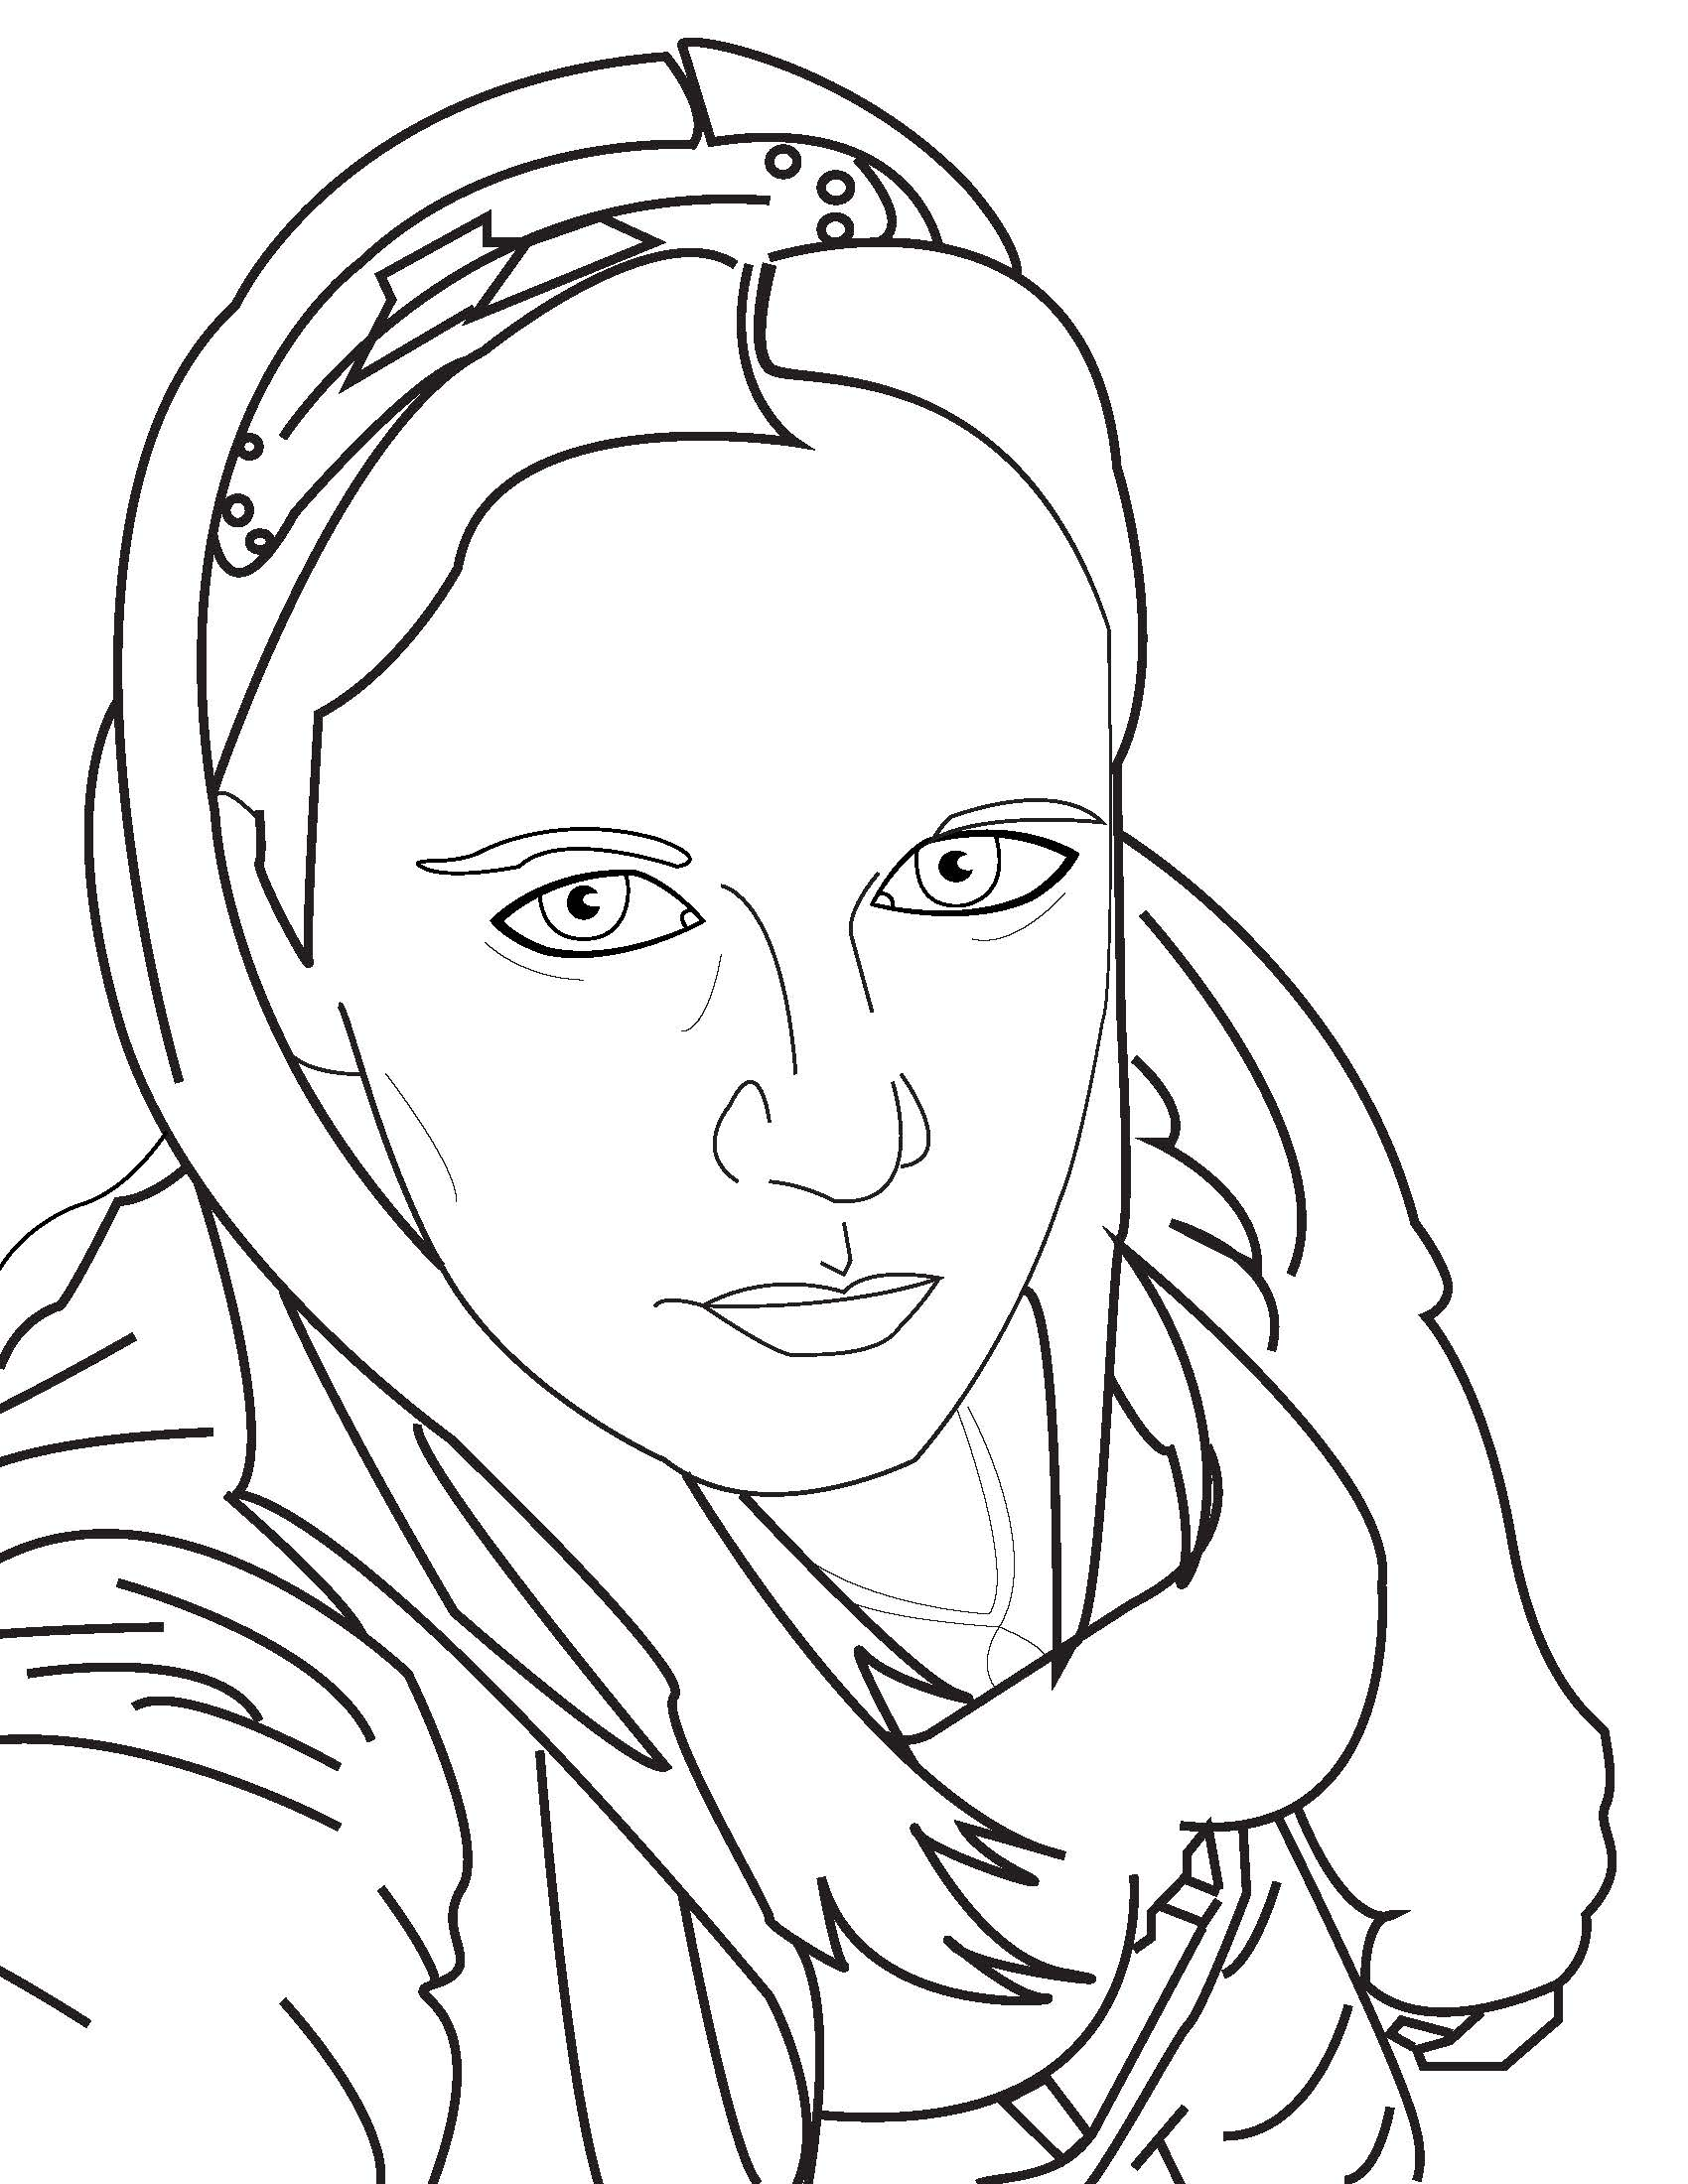 Line Drawing Portrait : Self portrait lineart by sparklingkajhit on deviantart